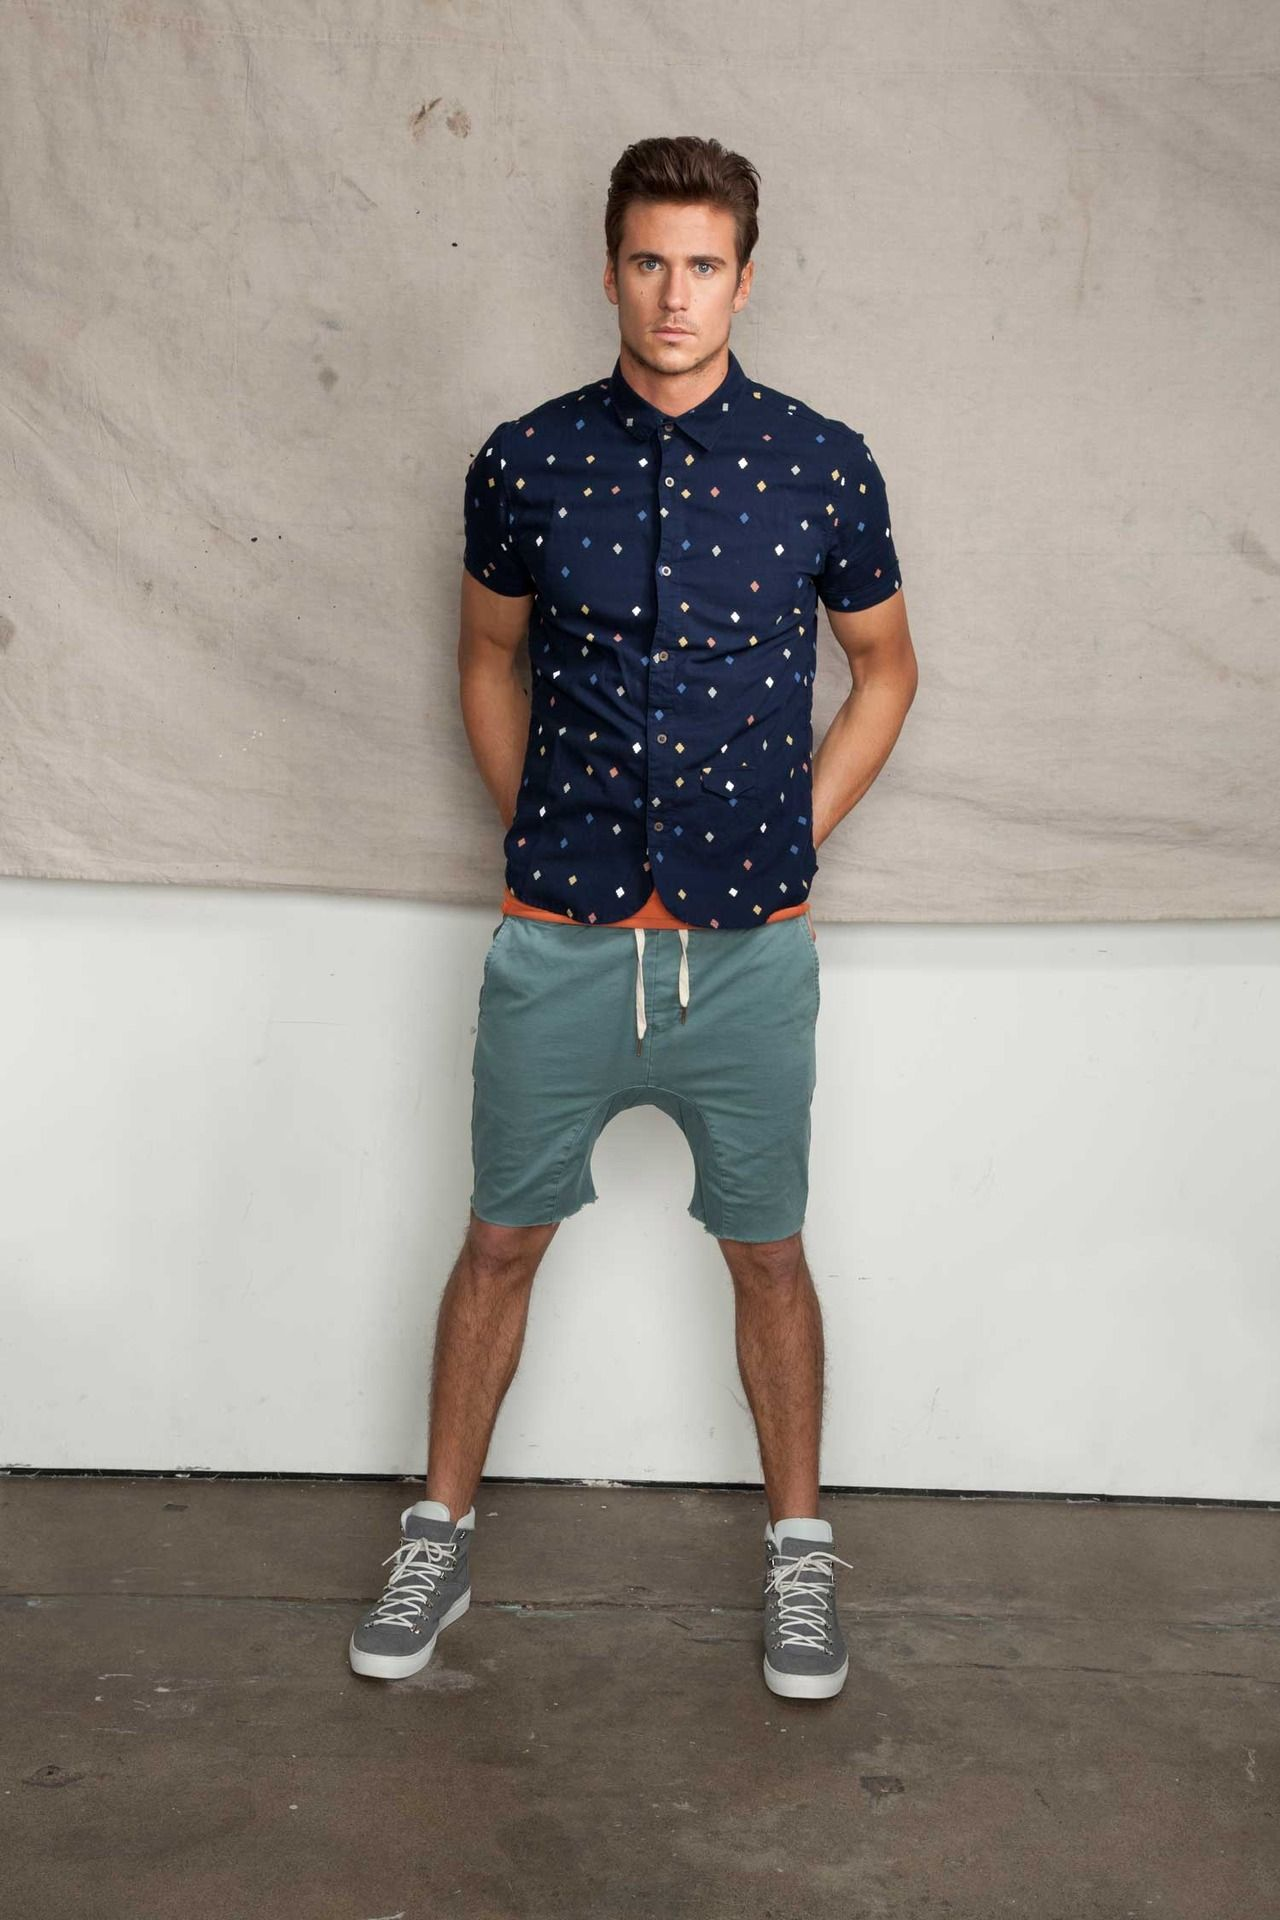 Mens summer outfits